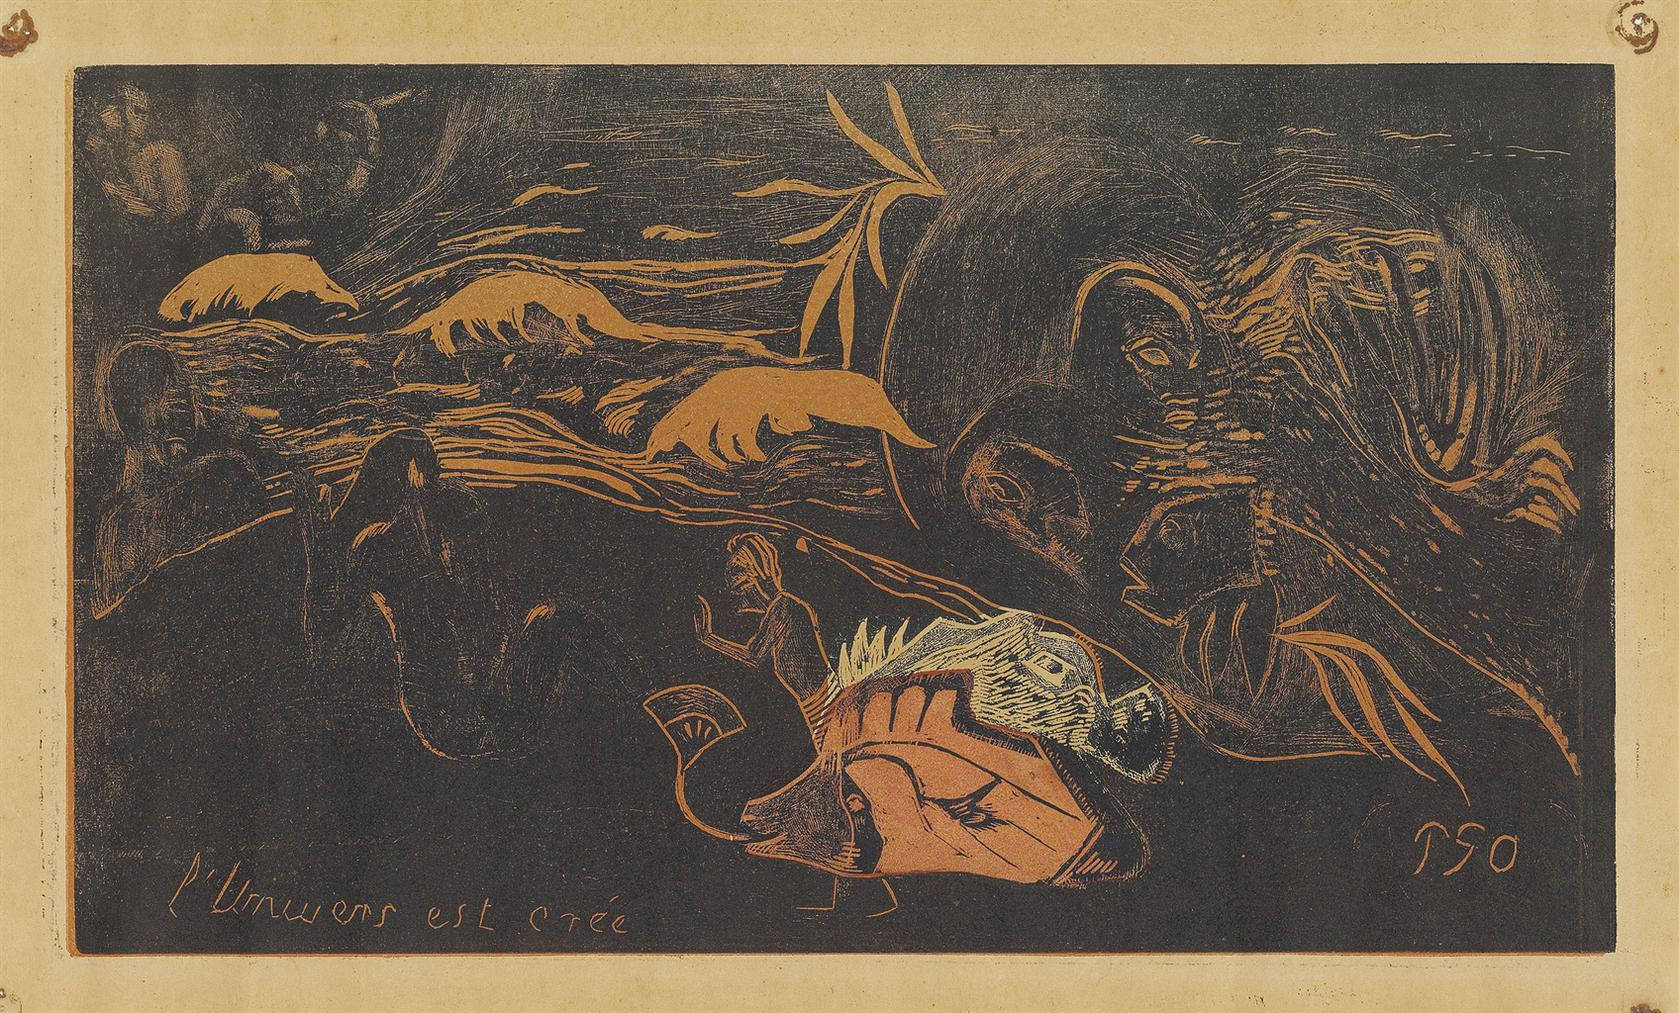 Paul Gauguin-Lunivers Est Cree (The Creation Of The Universe), From: Noa Noa-1894